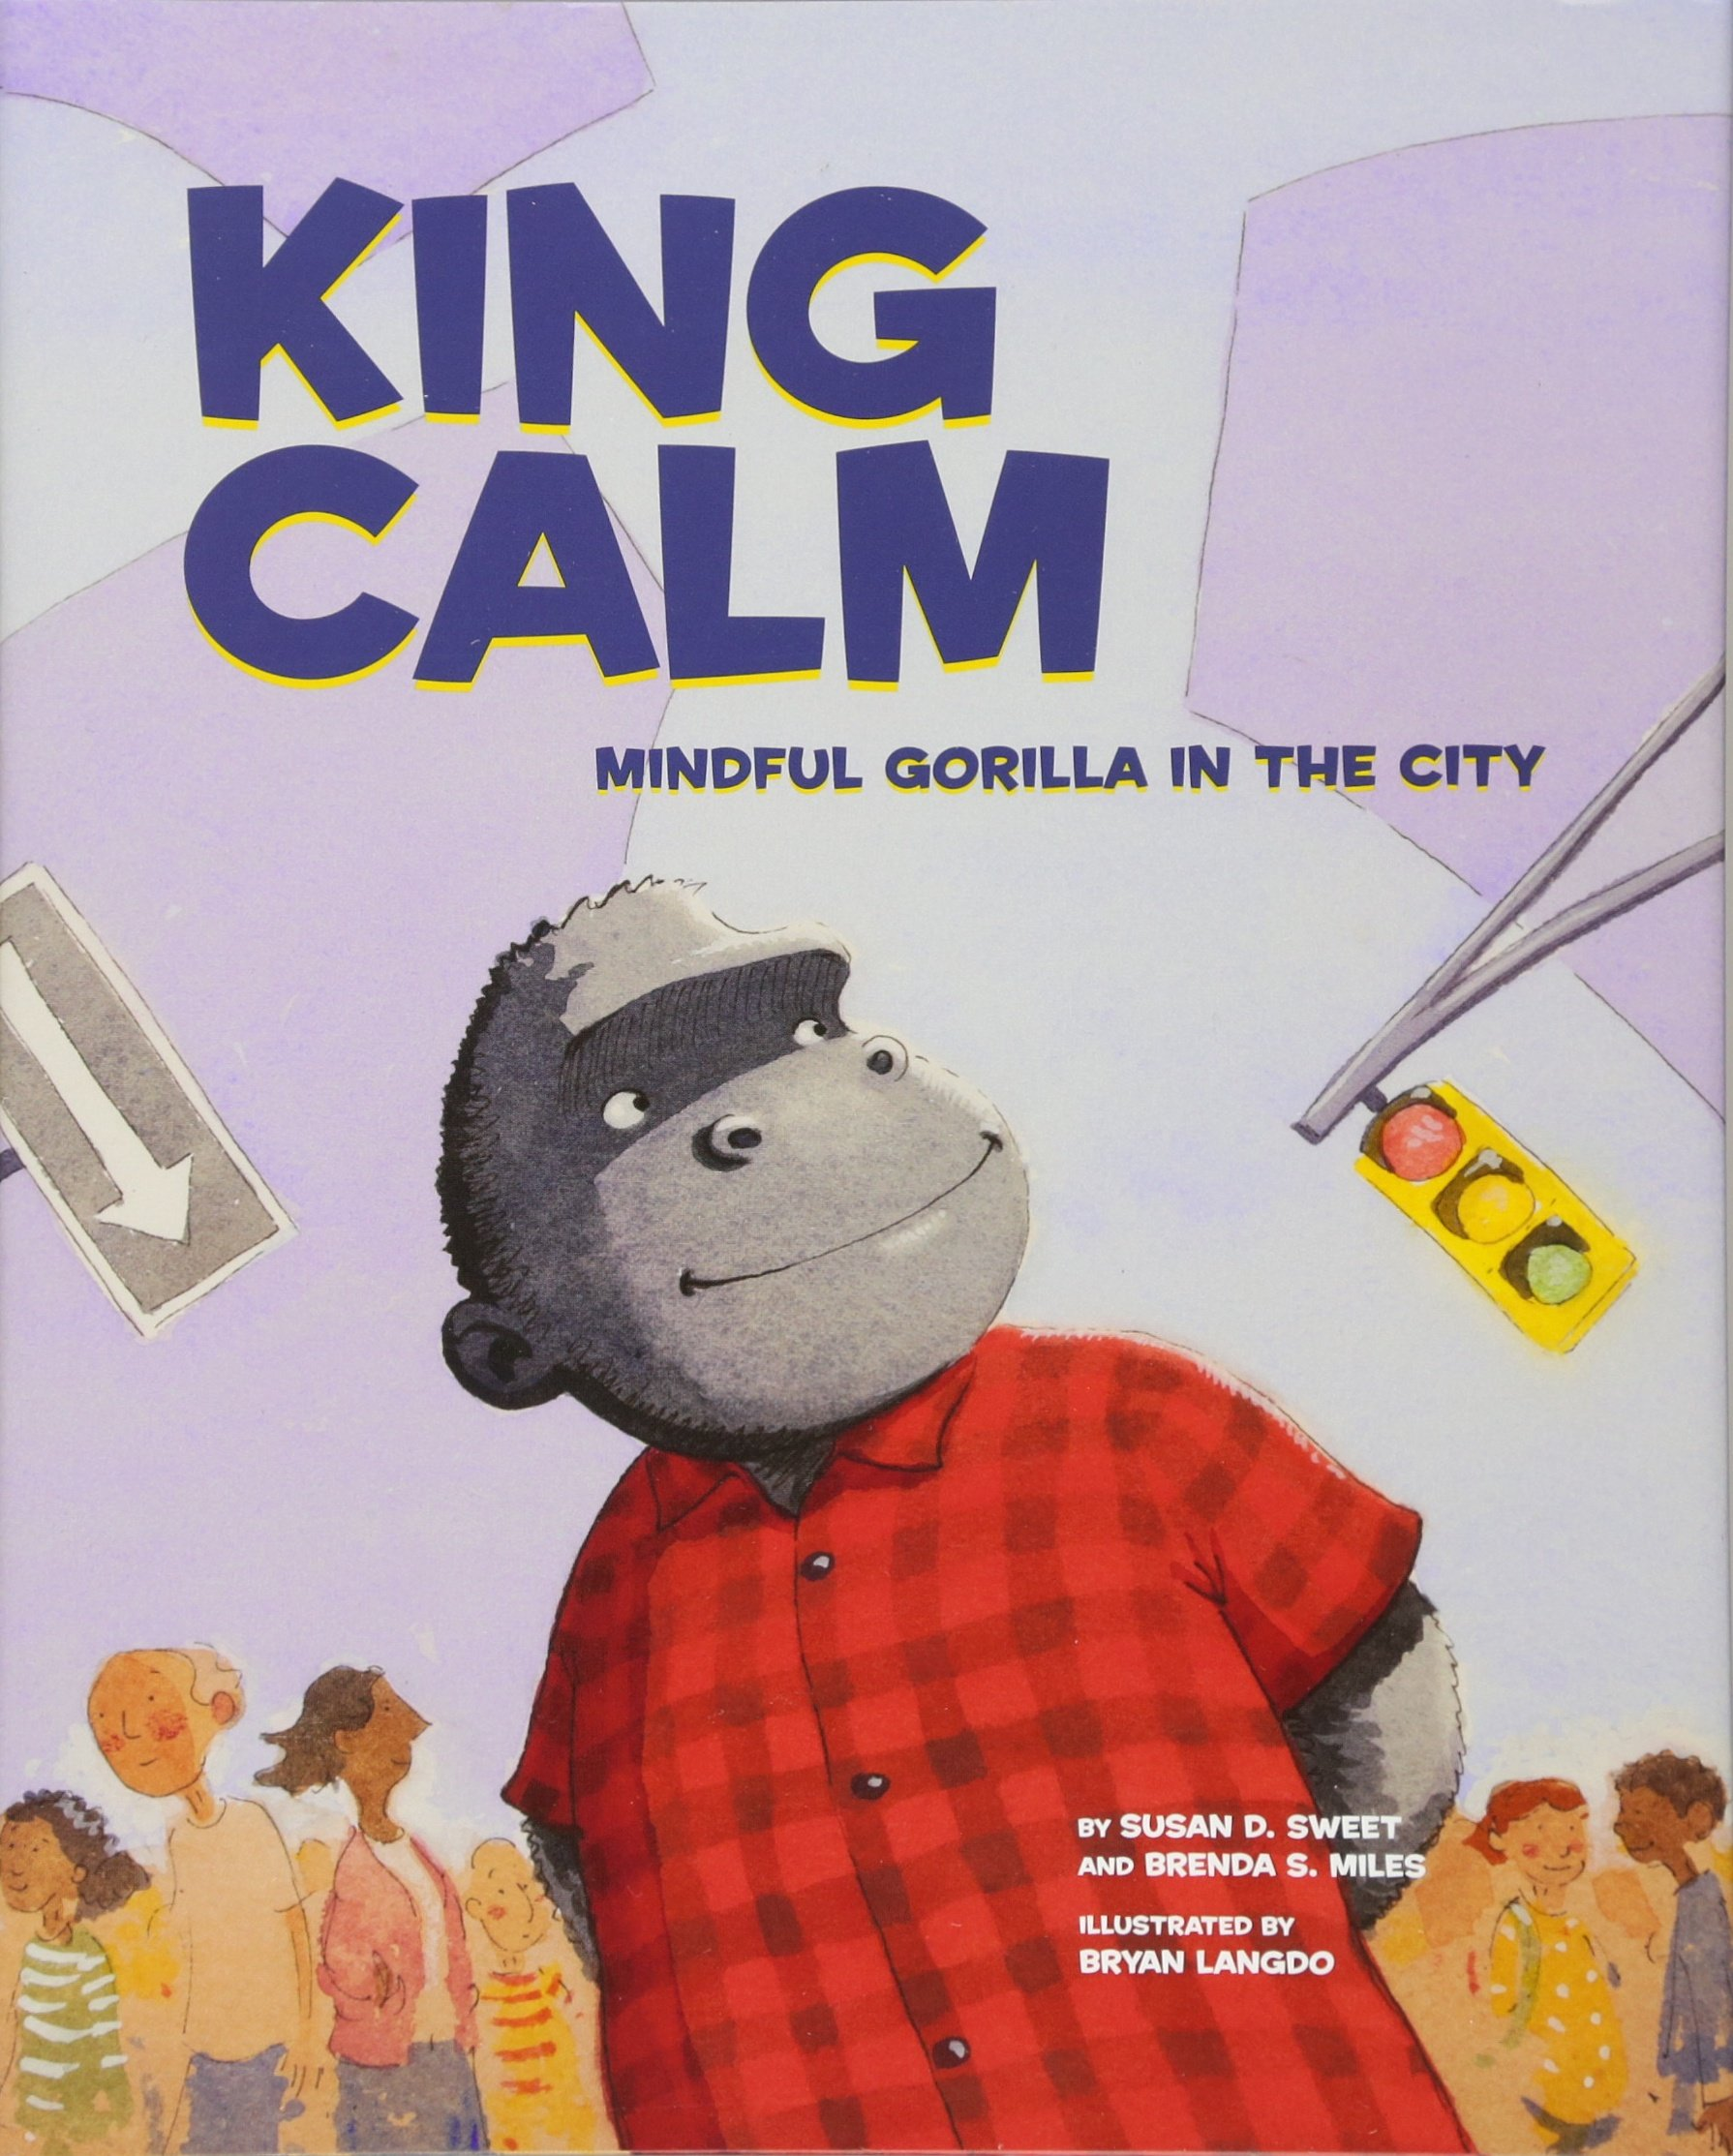 King Calm: Mindful Gorilla in the City